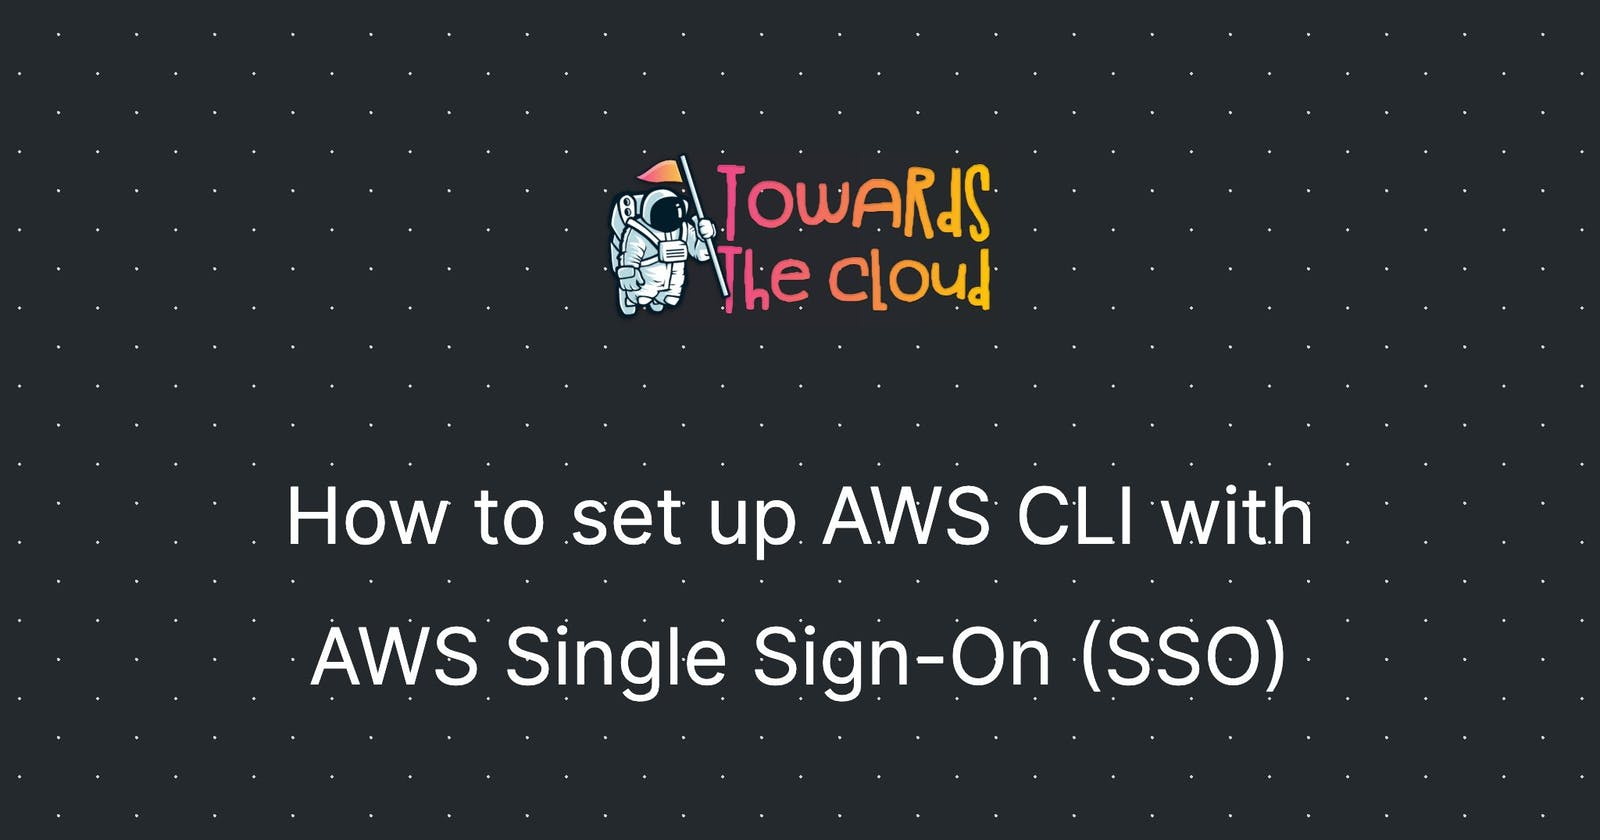 How to set up AWS CLI with AWS Single Sign-On (SSO)